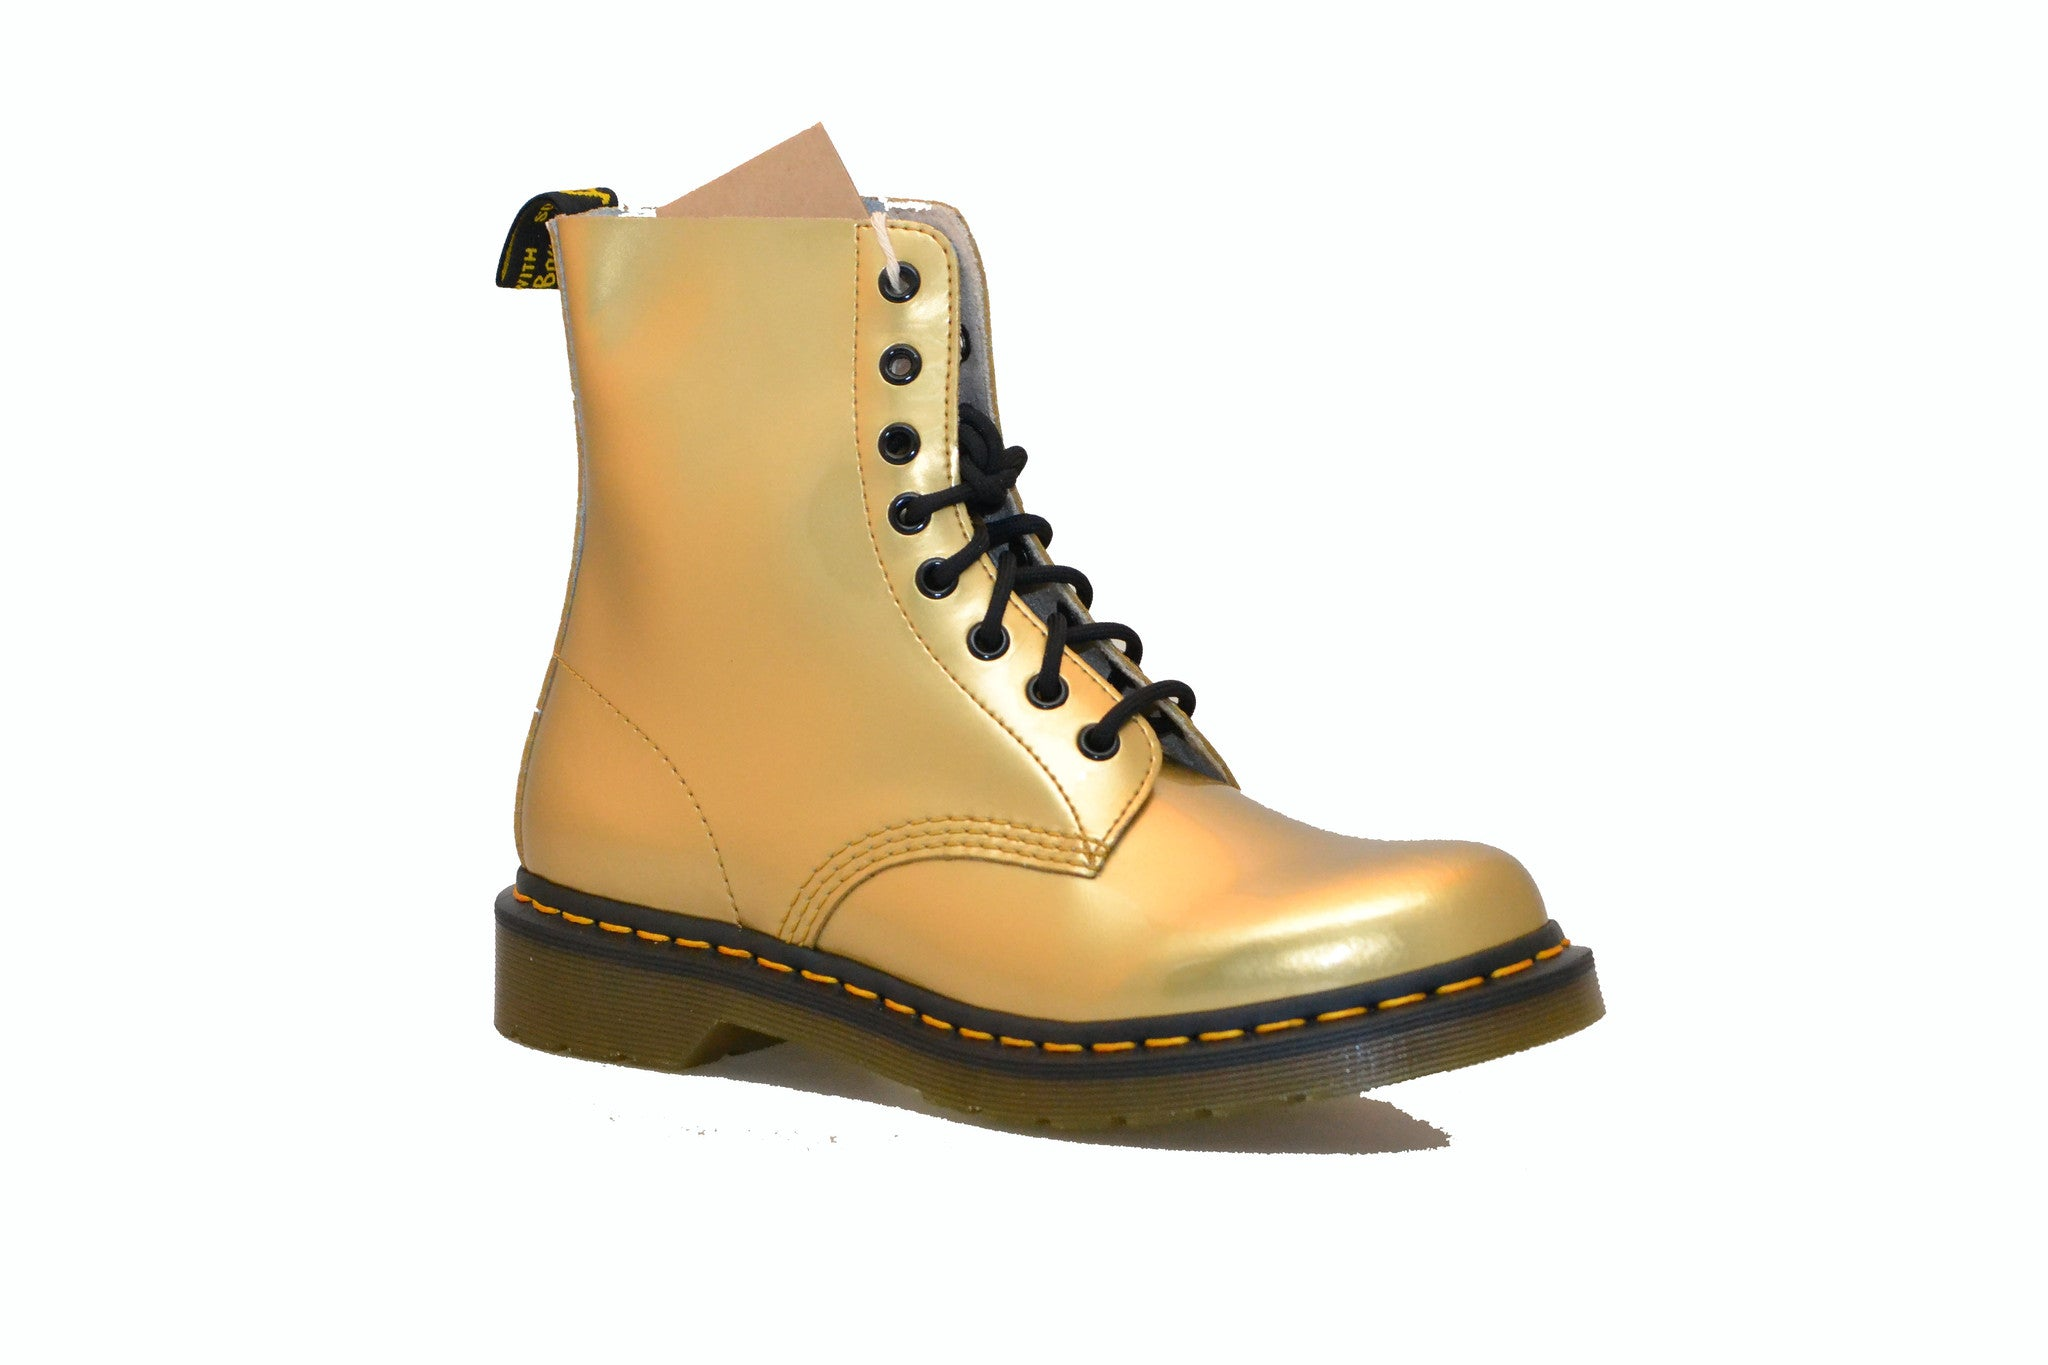 DR. MARTENS 8-EYE GOLD SPECTRA BOOT